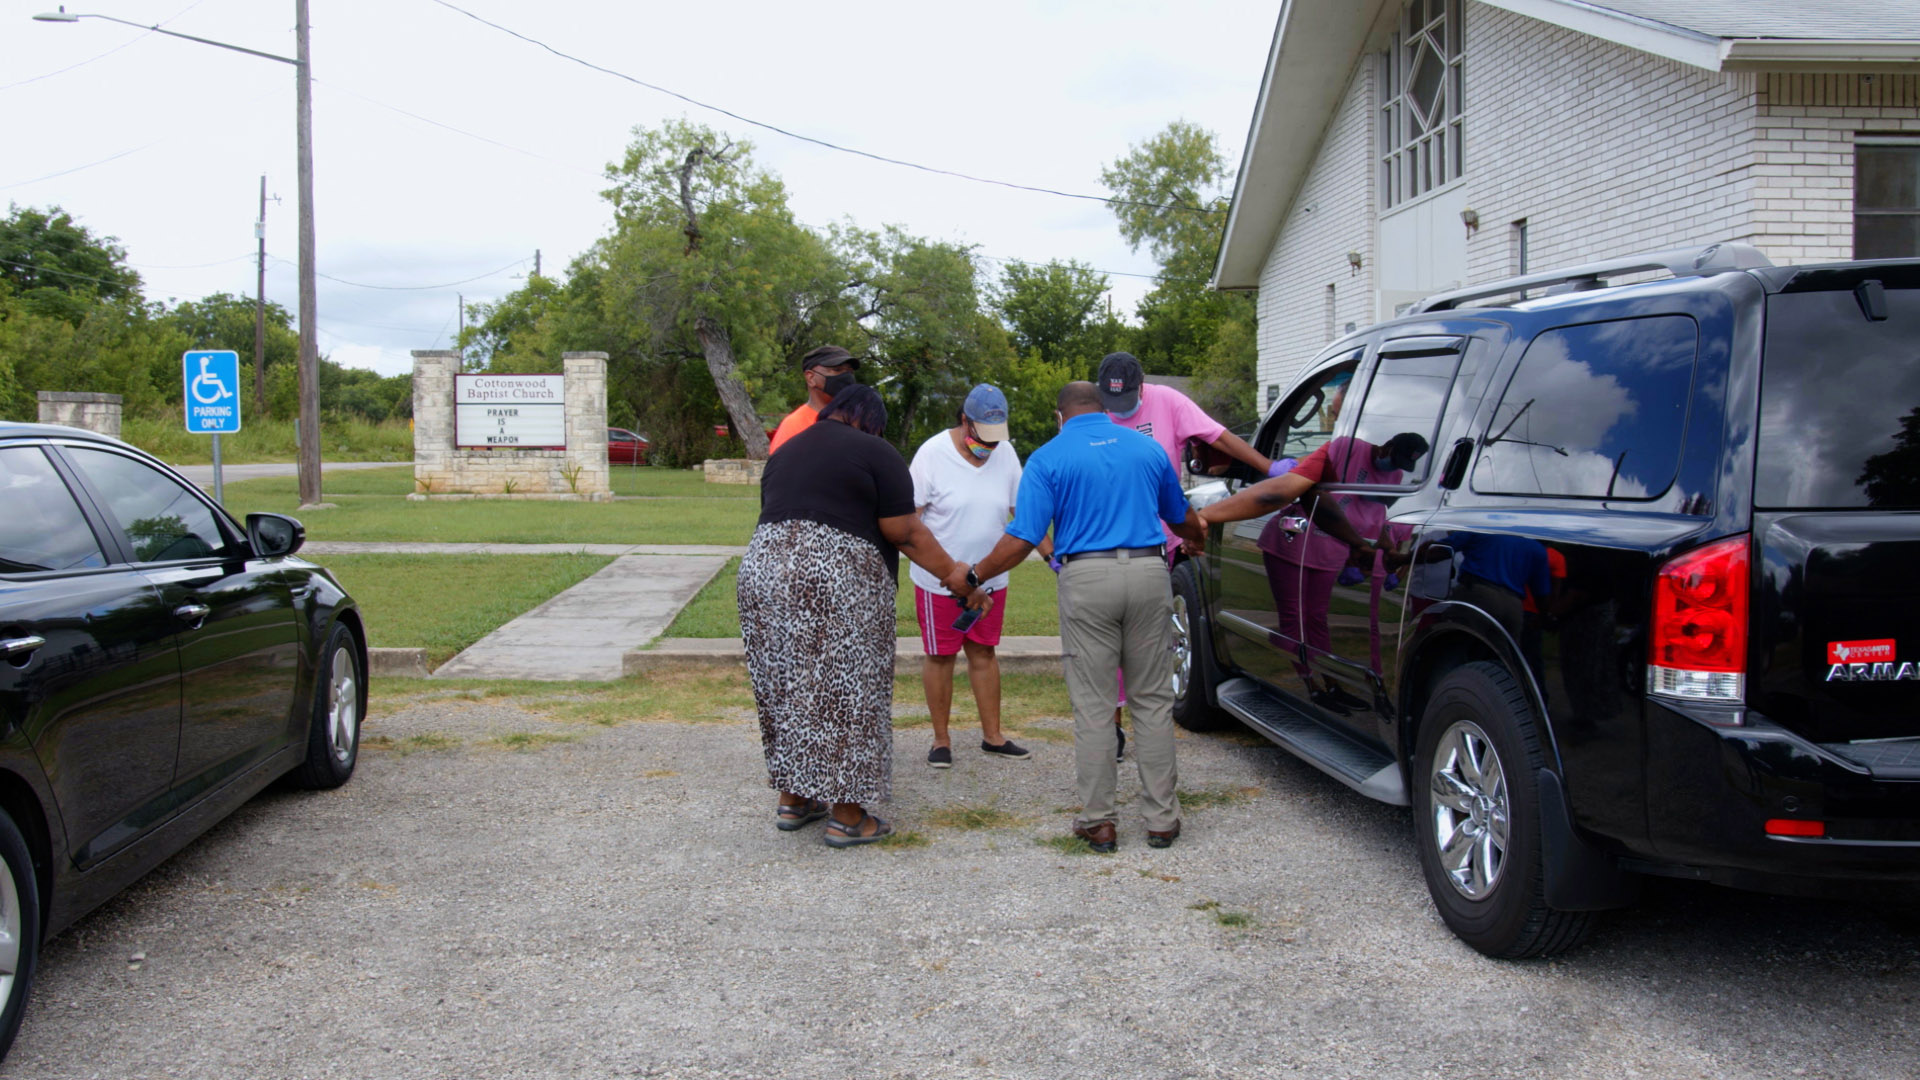 The Rev. Byron K. Jackson leads a prayer before he and volunteers distribute 125 meals to residents facing food insecurity in the neighborhood near Cottonwood Baptist Church on June 29, 2021